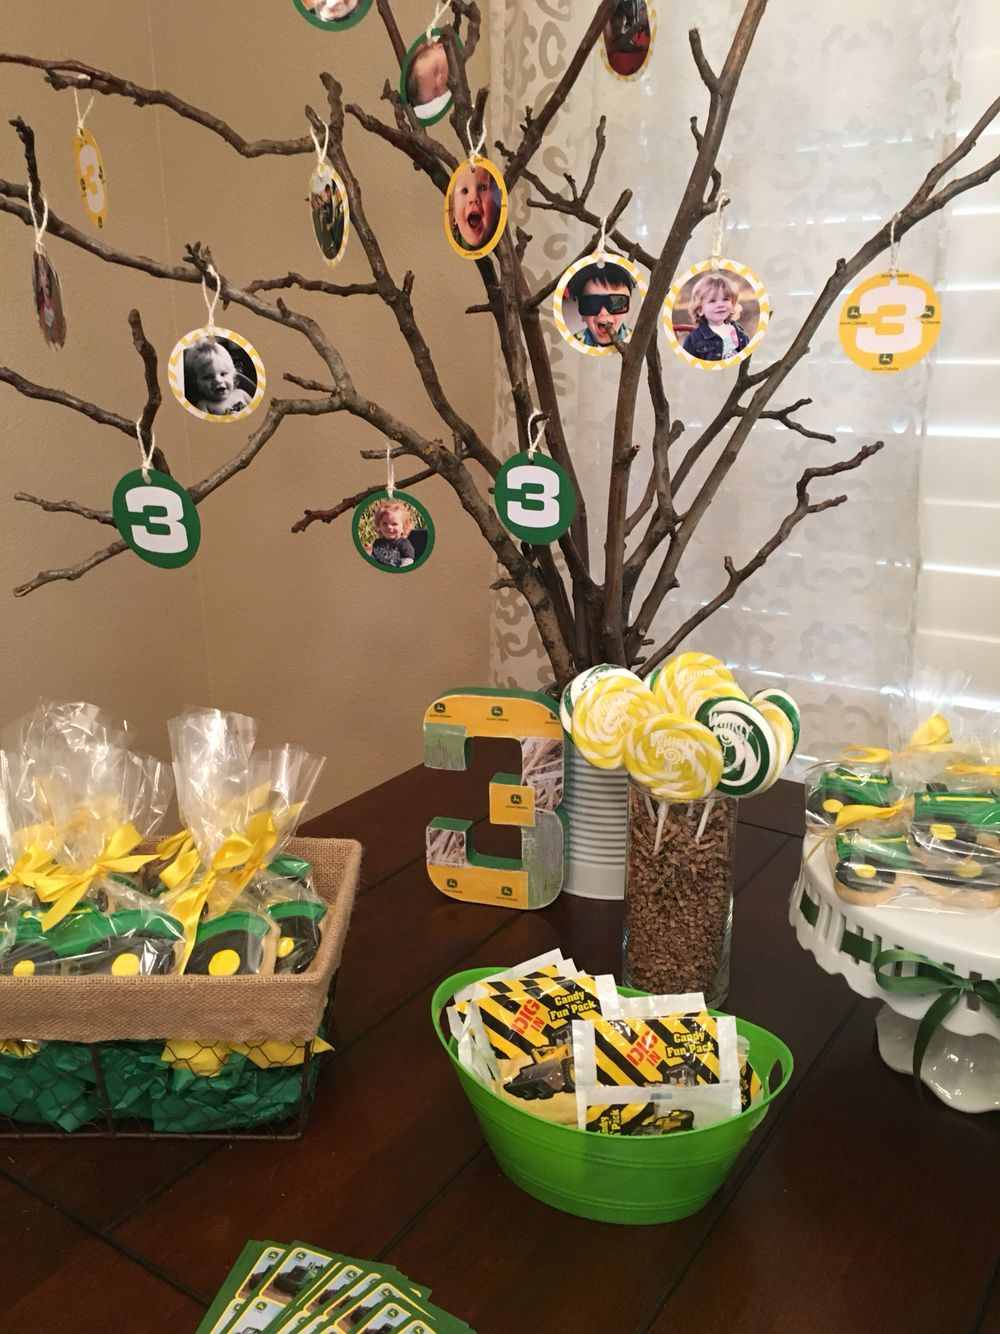 {Sweets table with a little tree full of photo ornaments} • John Deere birthday • John Deere theme party • kids birthday • boy birthday party ideas • green and yellow party colors • tractor birthday • John Deere •